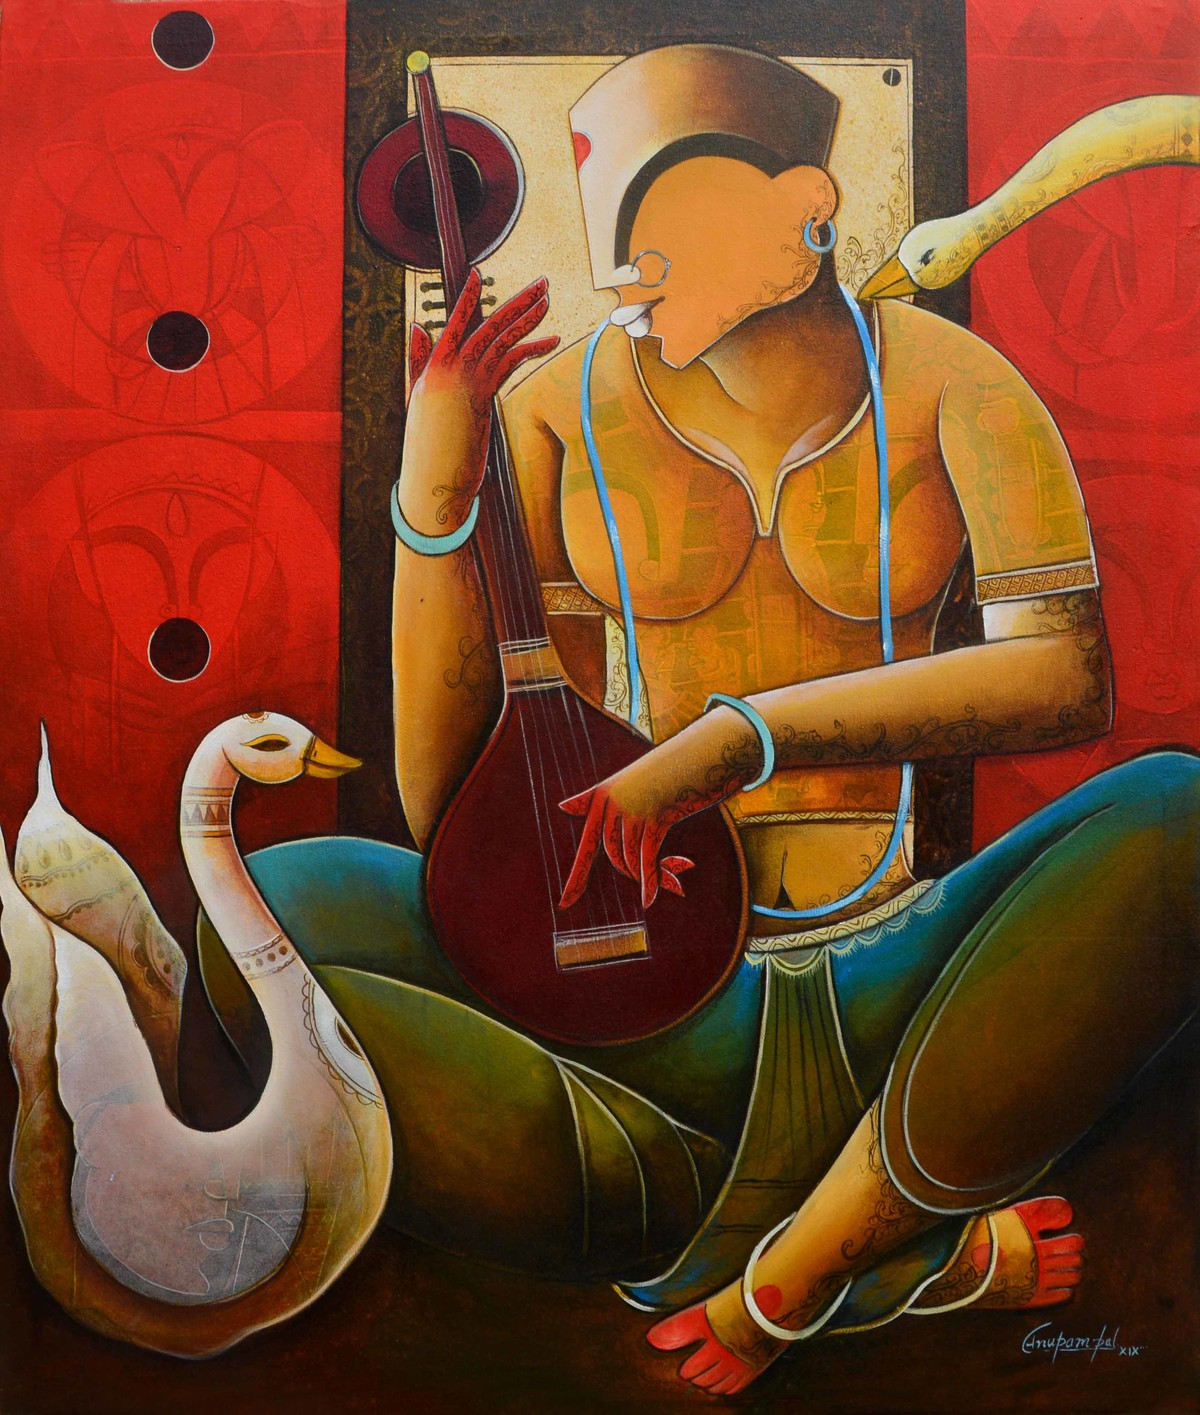 Veenavani by anupam pal, Decorative Painting, Acrylic on Canvas, Brown color